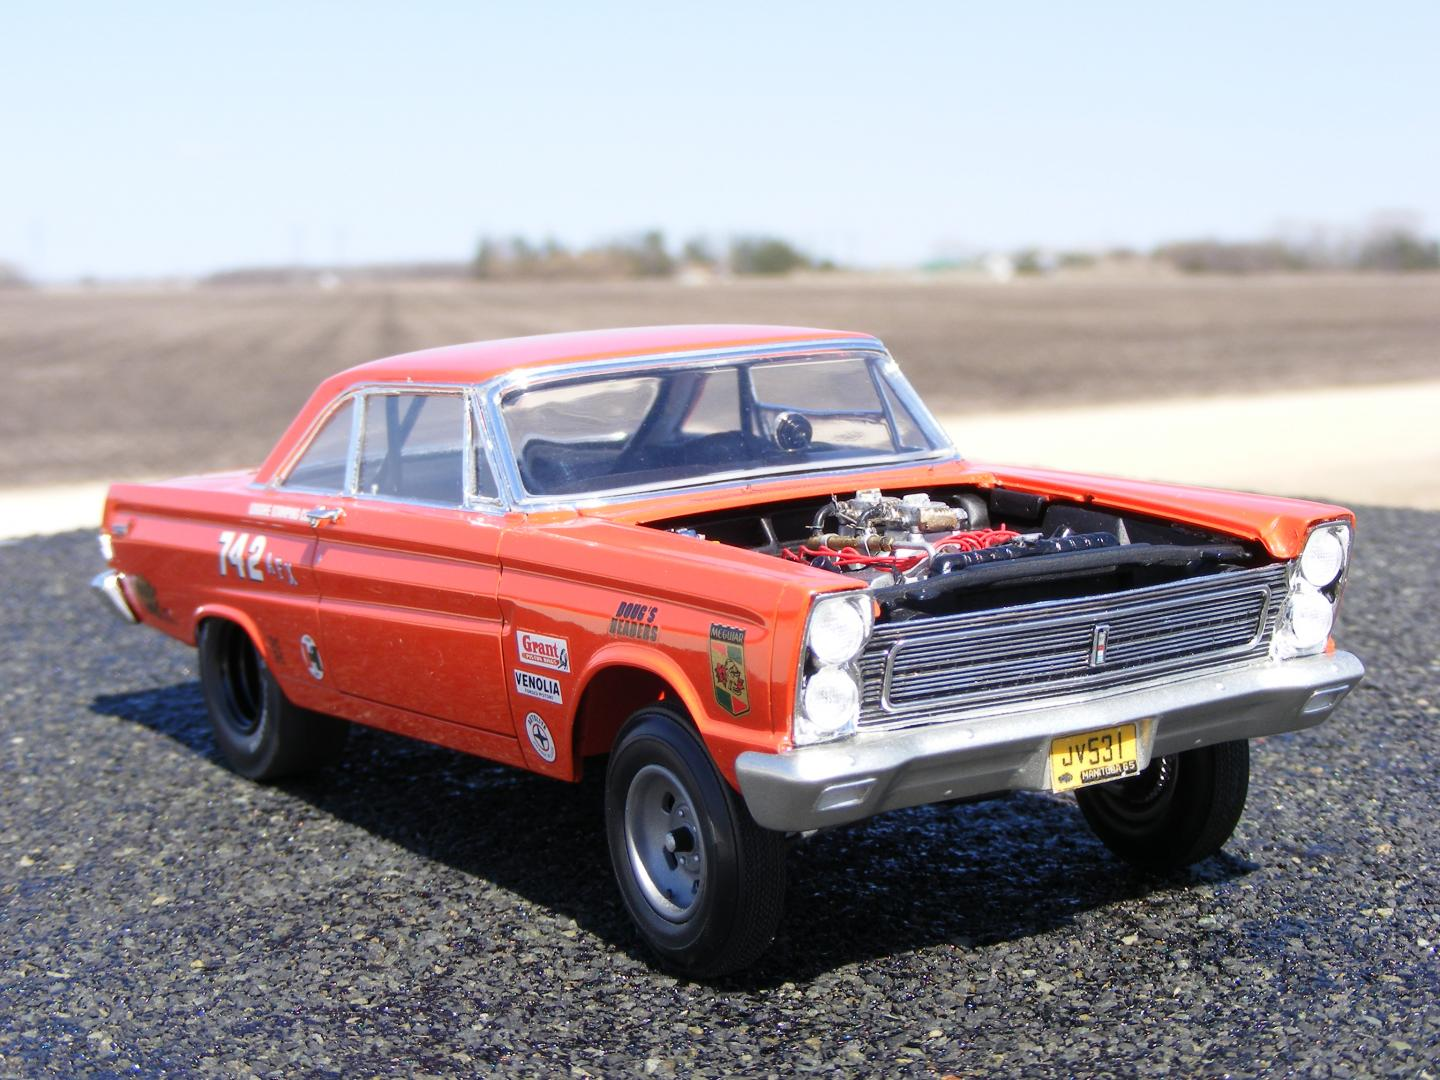 Lock Out Kit For Cars >> Moebius 1965 Cyclone A/FX 427 SOHC - Drag Racing Models - Model Cars Magazine Forum